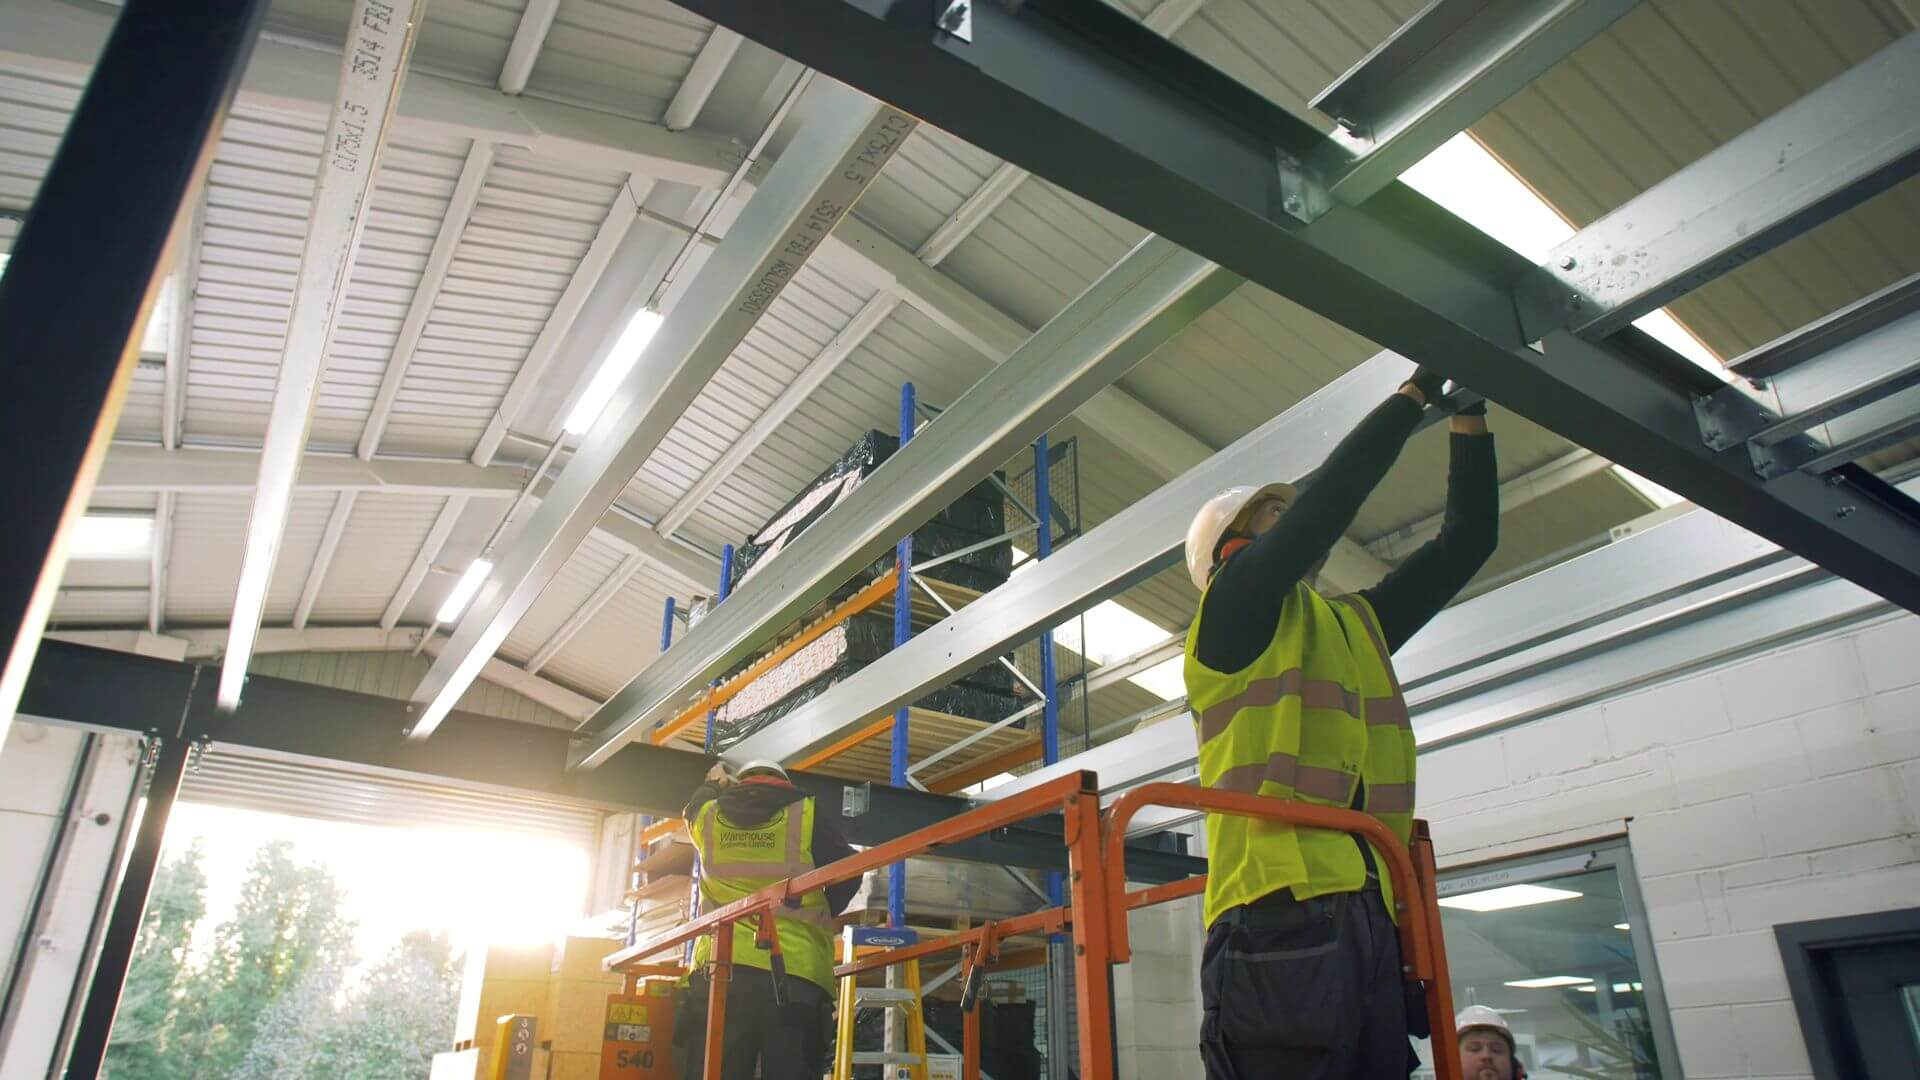 Mezzanine Floor Installation: What's involved?